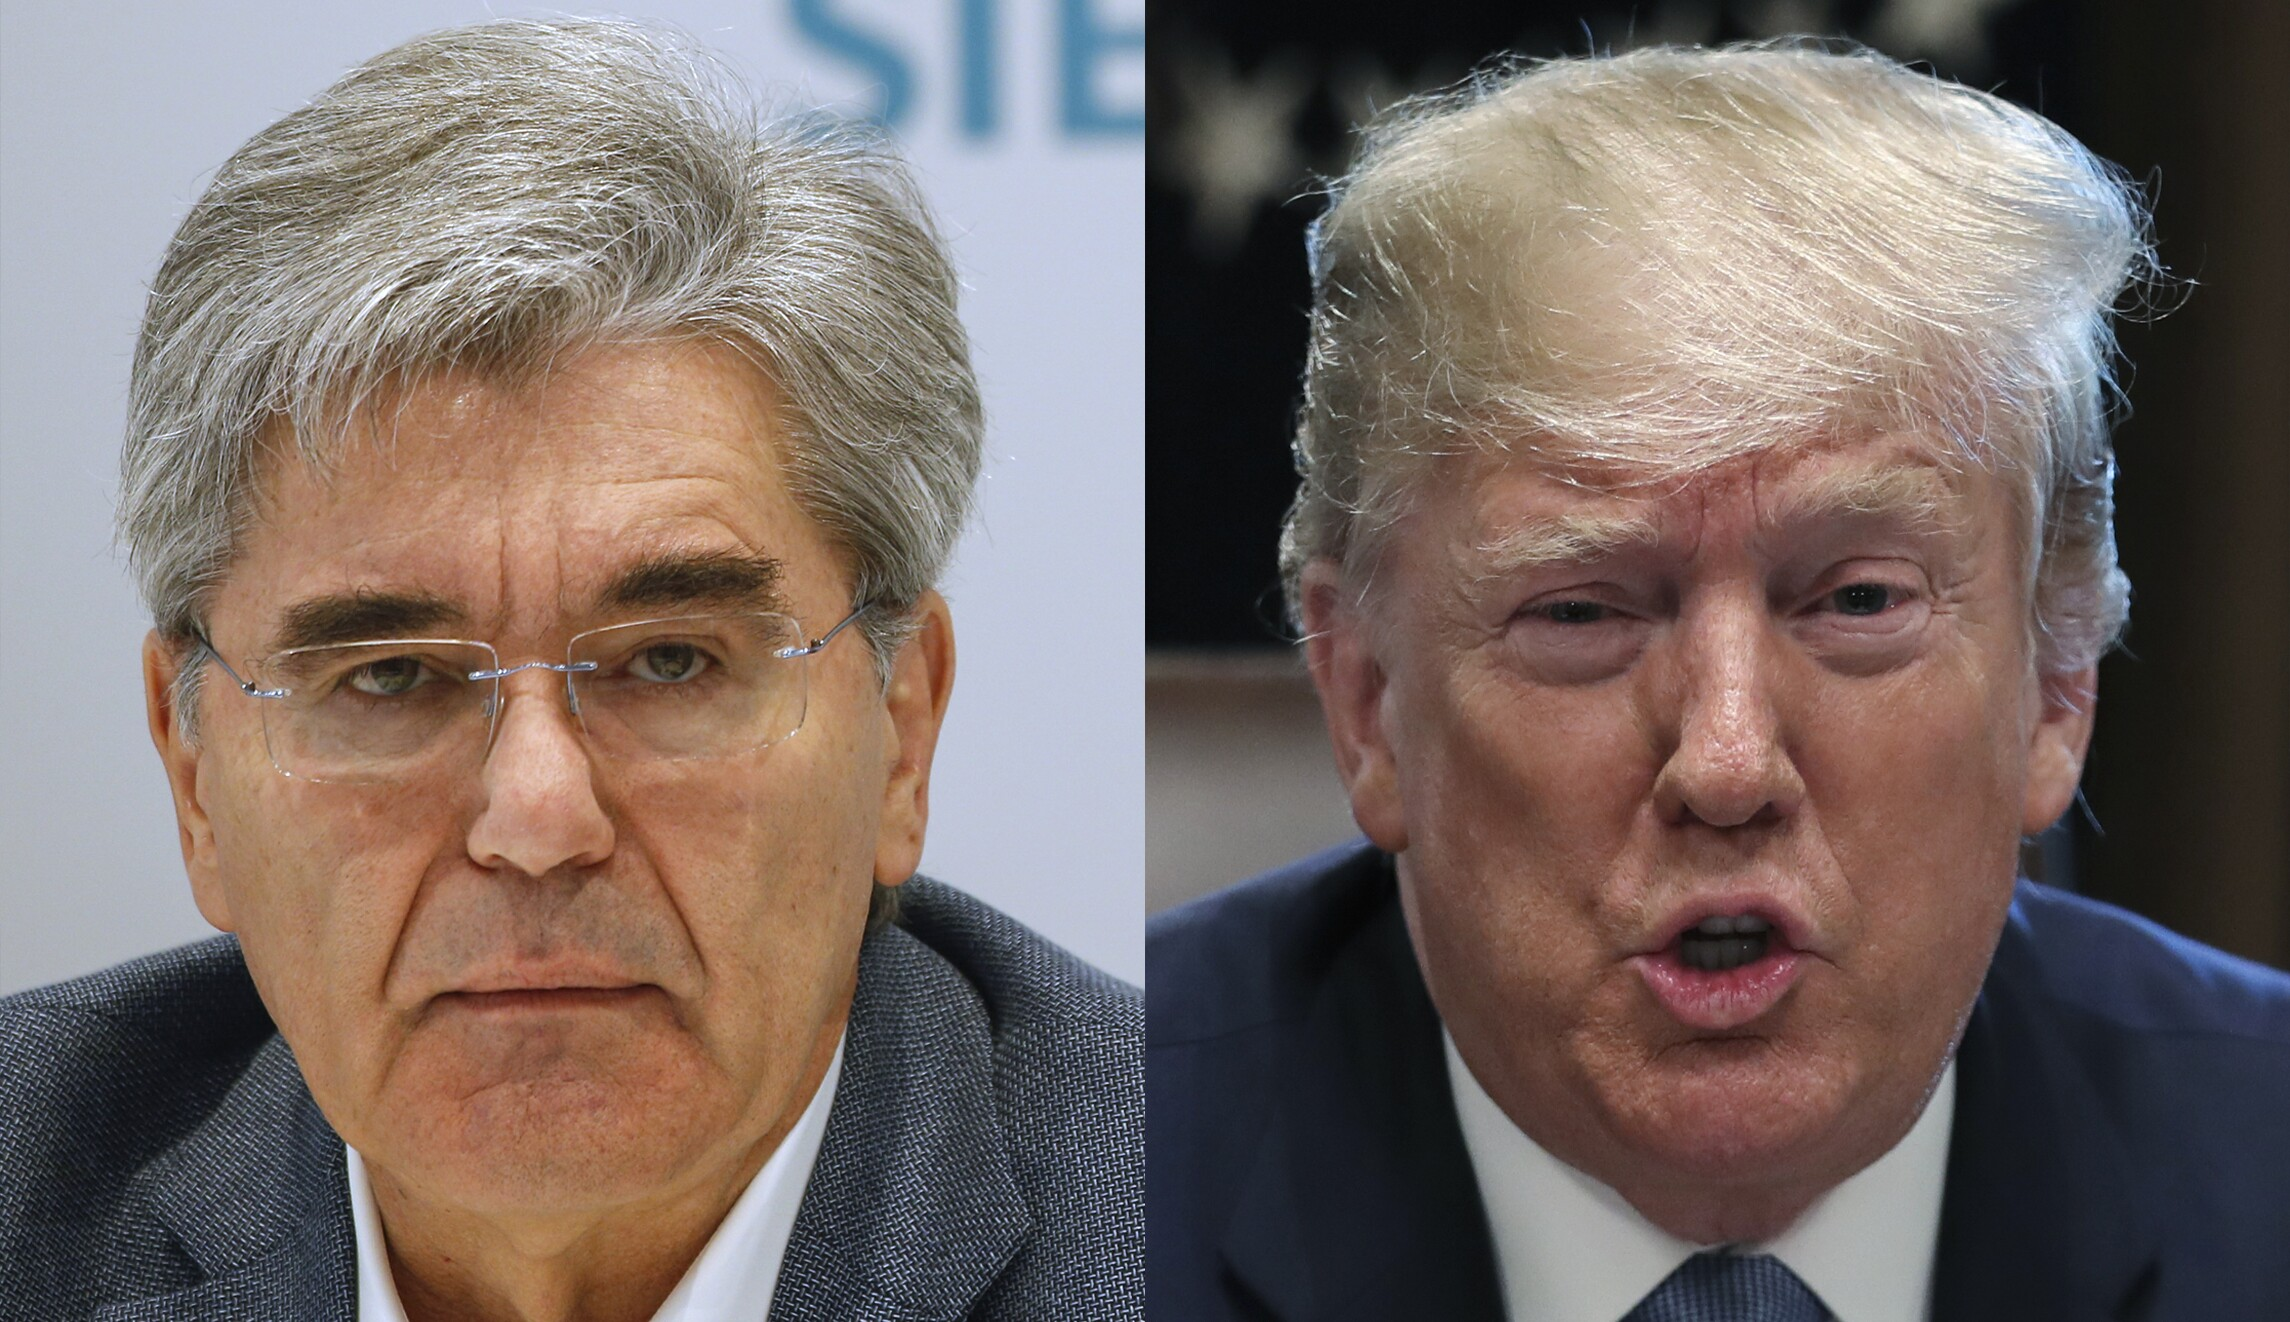 Siemens CEO calls Trump the 'face of racism' after 'send her back' chants